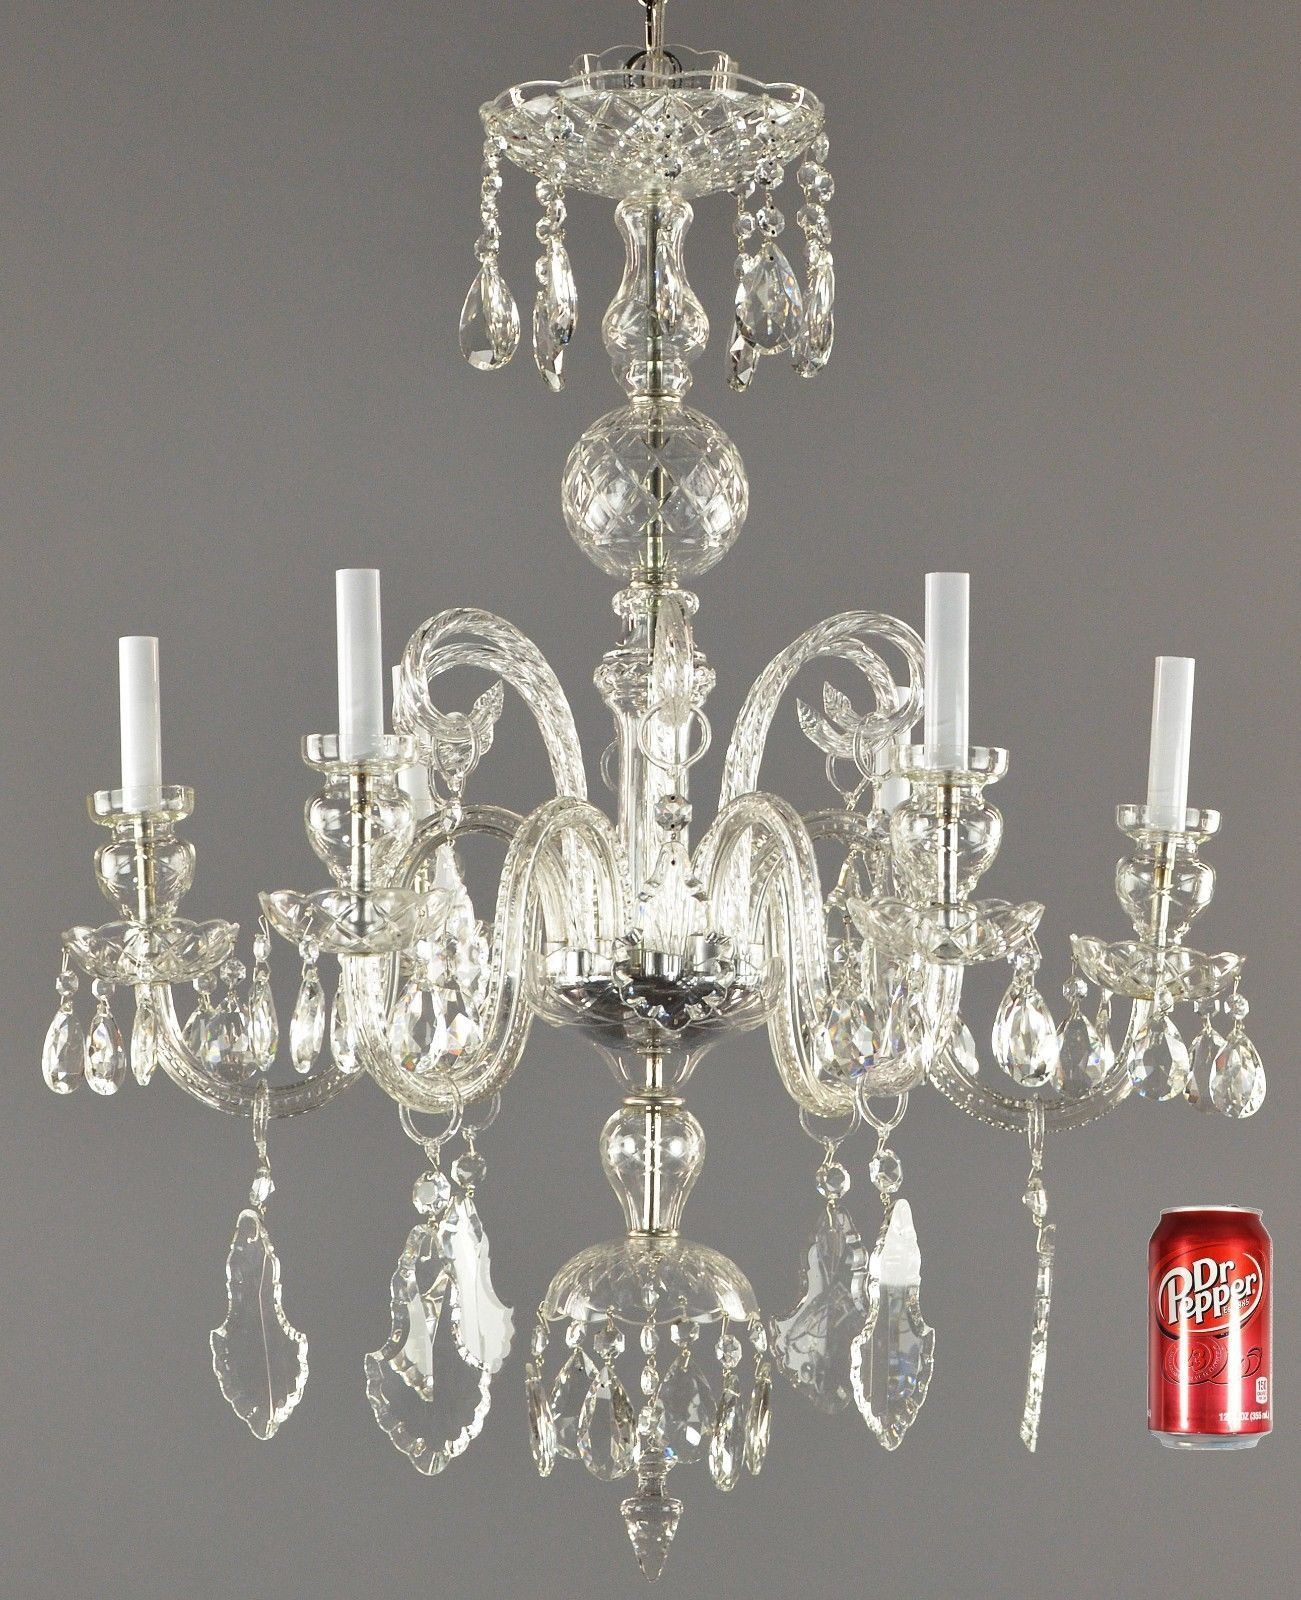 a regular crystal chandeliers price large chandelier